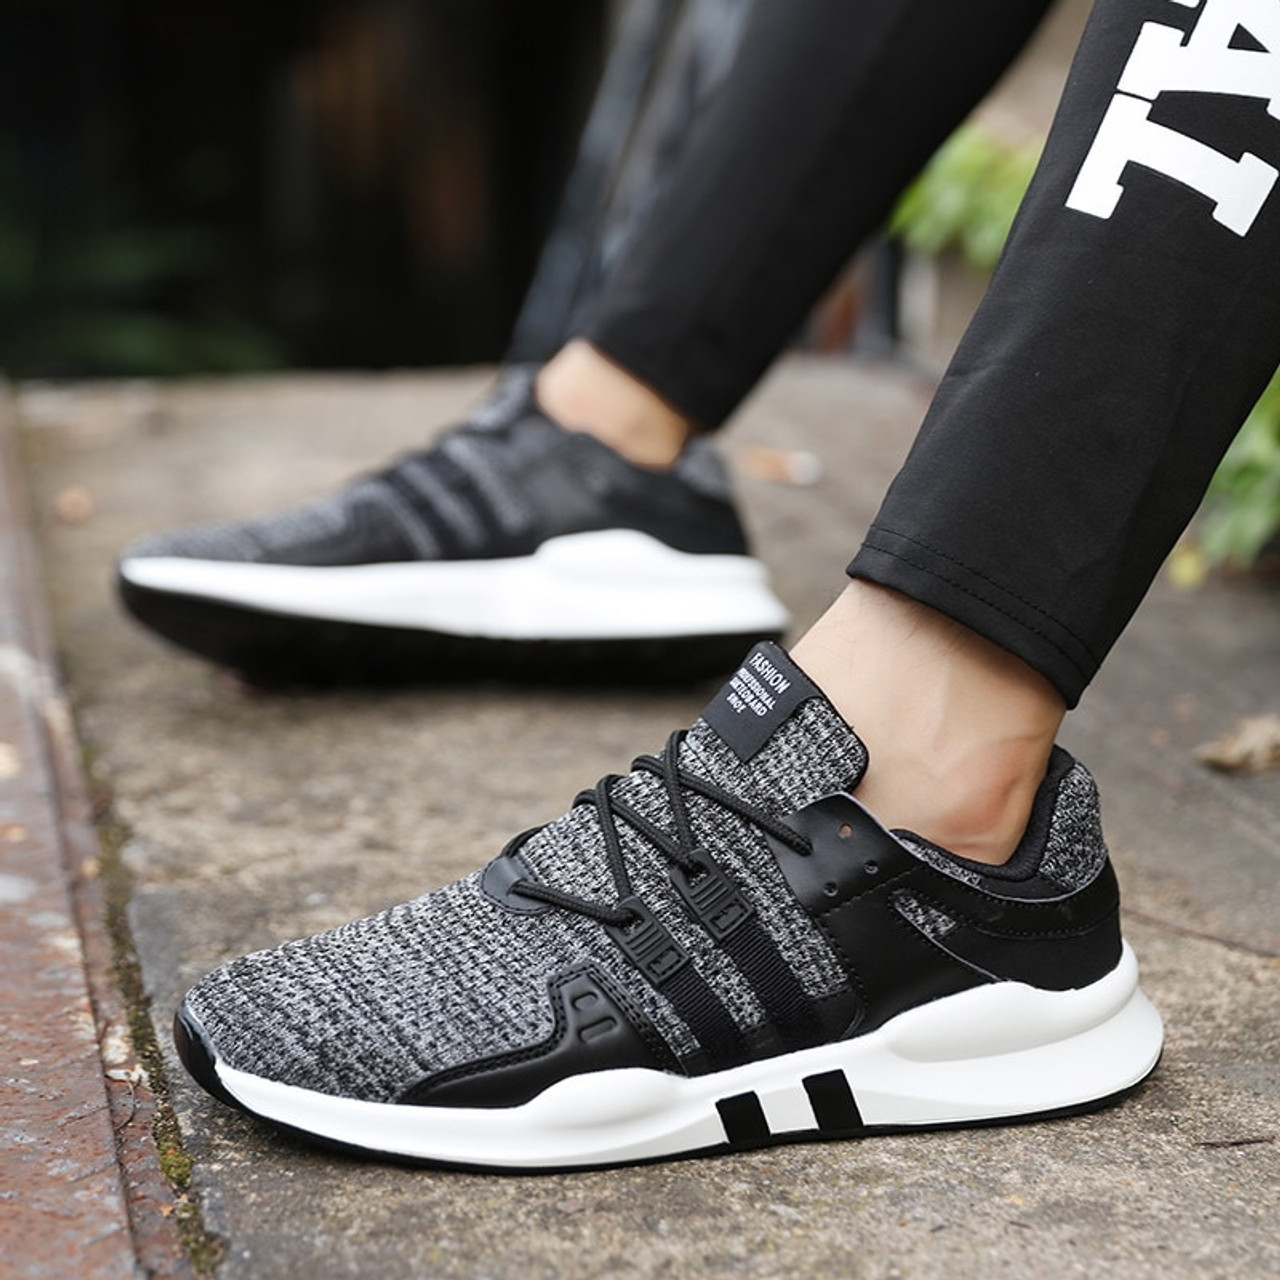 43ee99c92169e ... PINSV Summer Shoes Men Sneakers Breathable Casual Loafers Men Shoes  Black Sneakers Mens Trainers Chaussure Homme ...